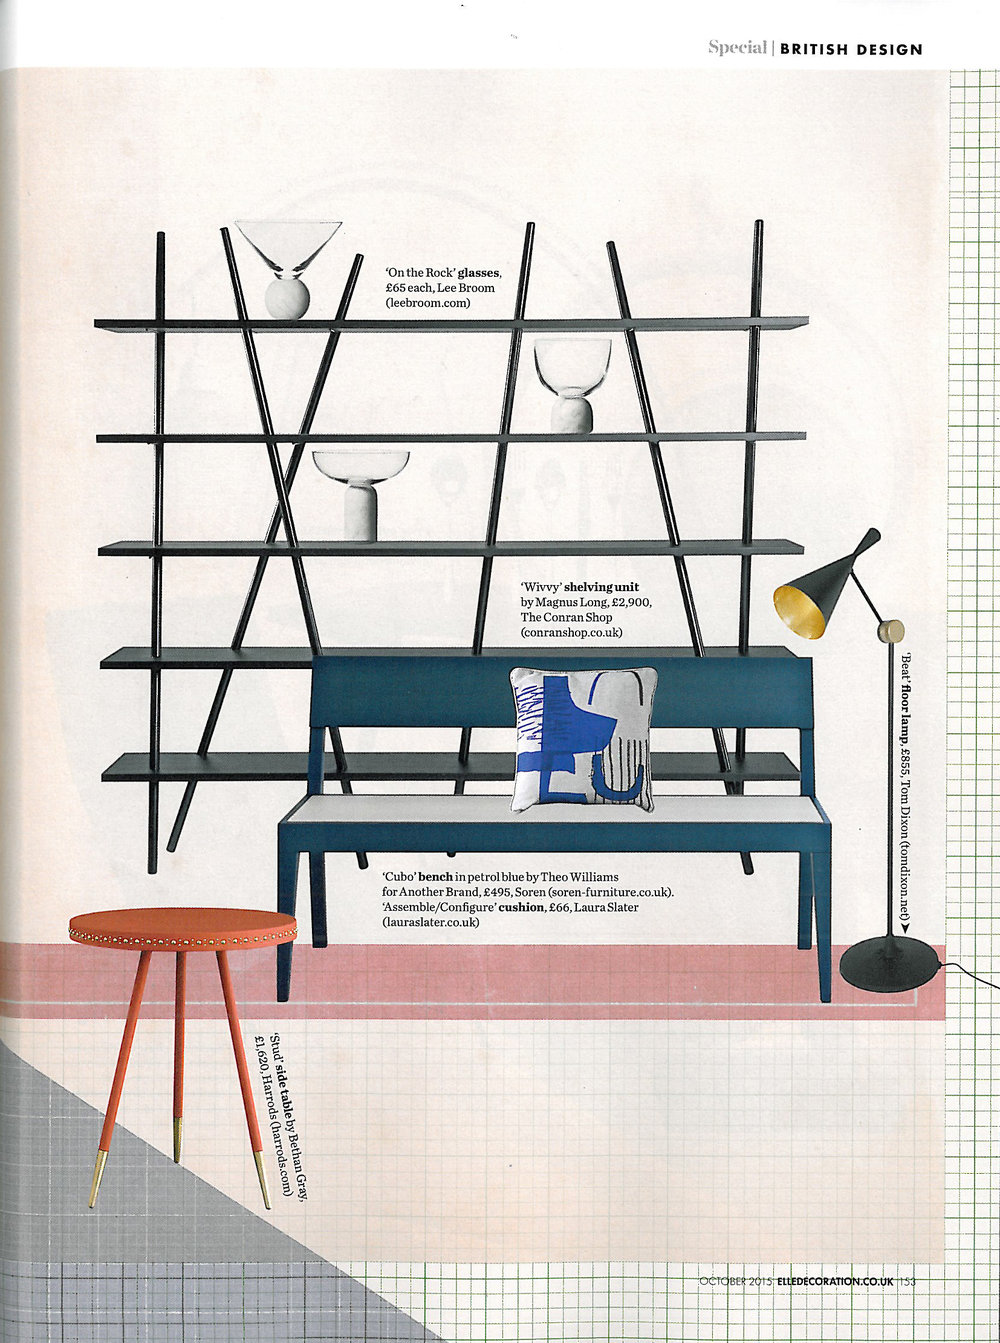 Elle Decoration – Oct 15